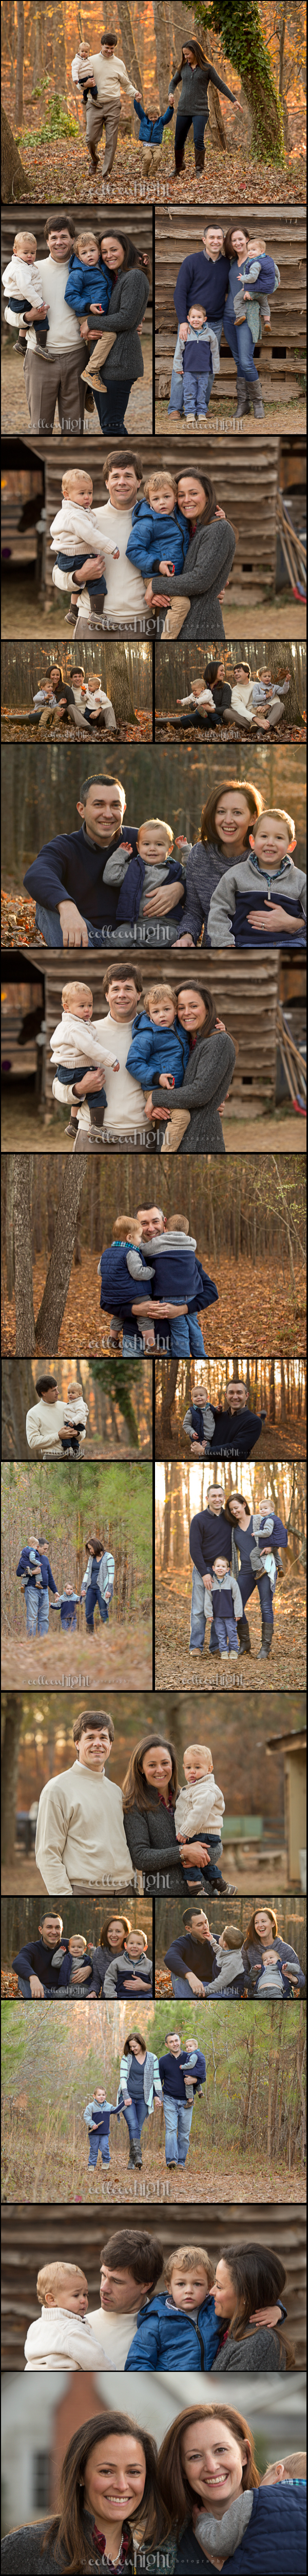 Trading Services for Family Portrait Session in Cumming Georgia